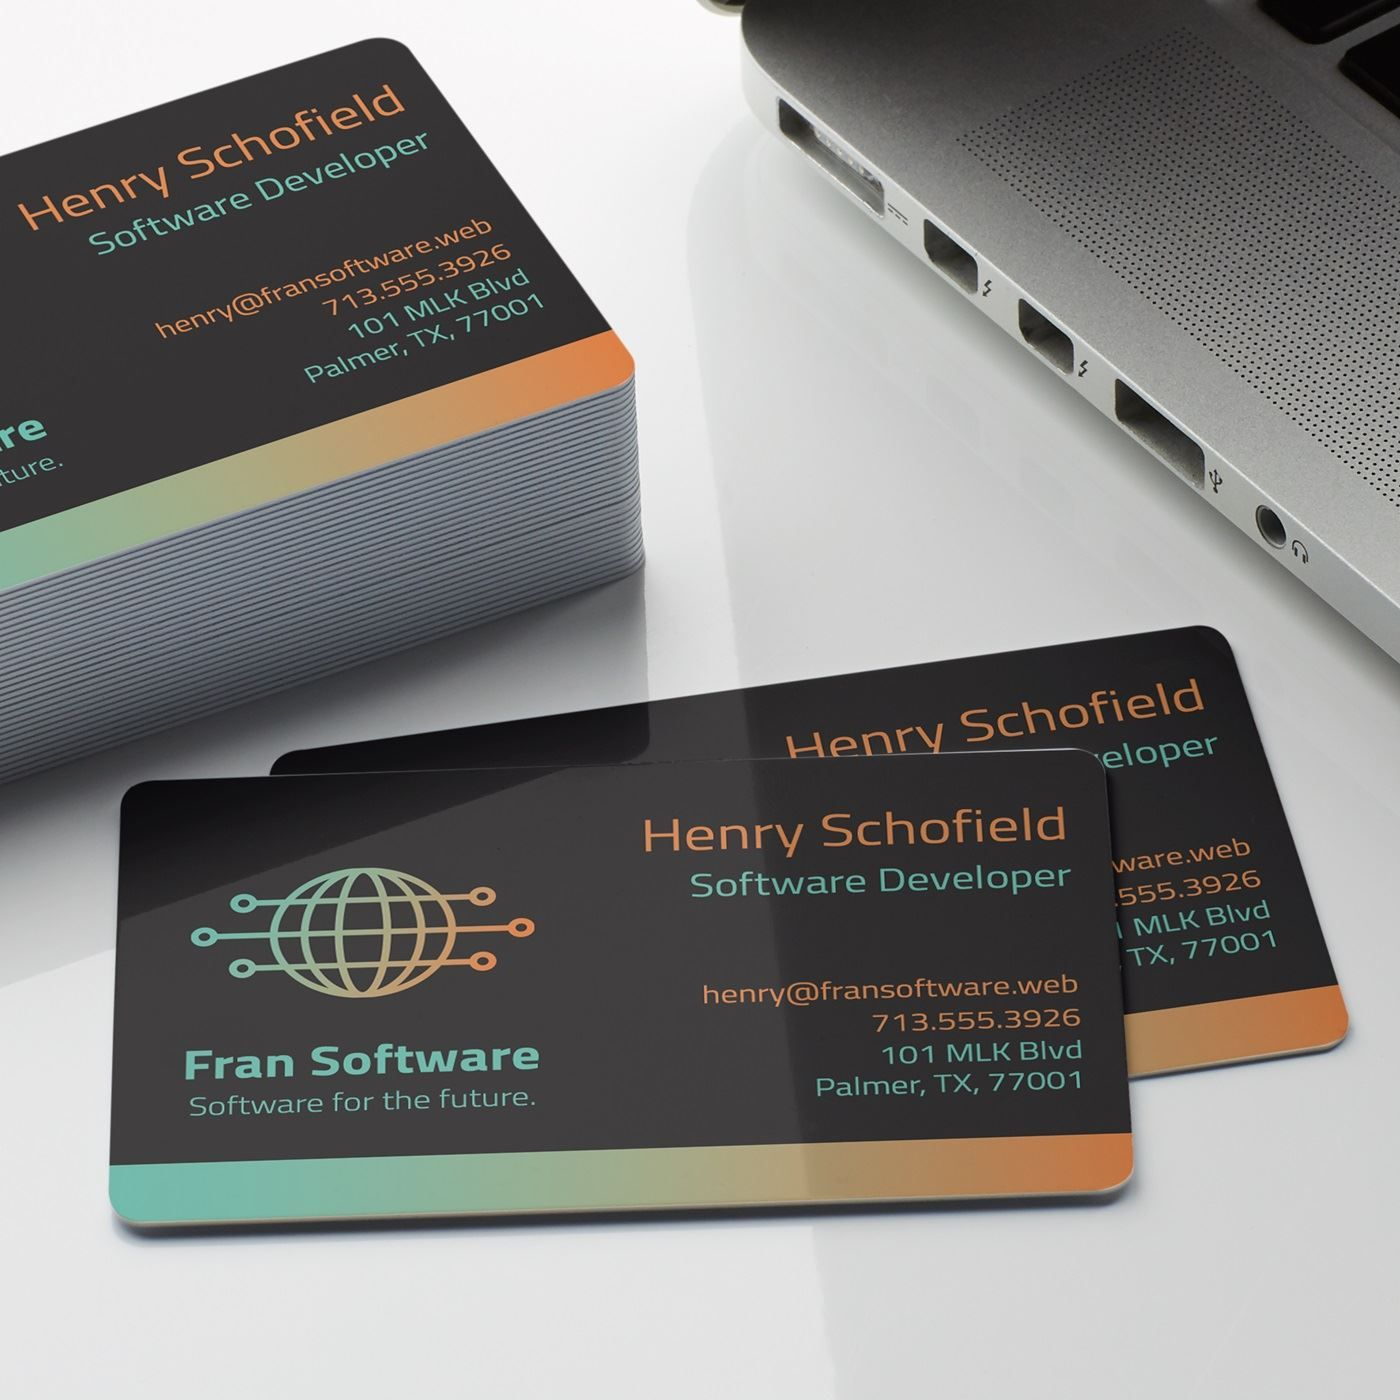 Plastic Business Cards Plastic Card Printing Vistaprint Plastic Business Cards Clear Business Cards Plastic Photo Business Cards